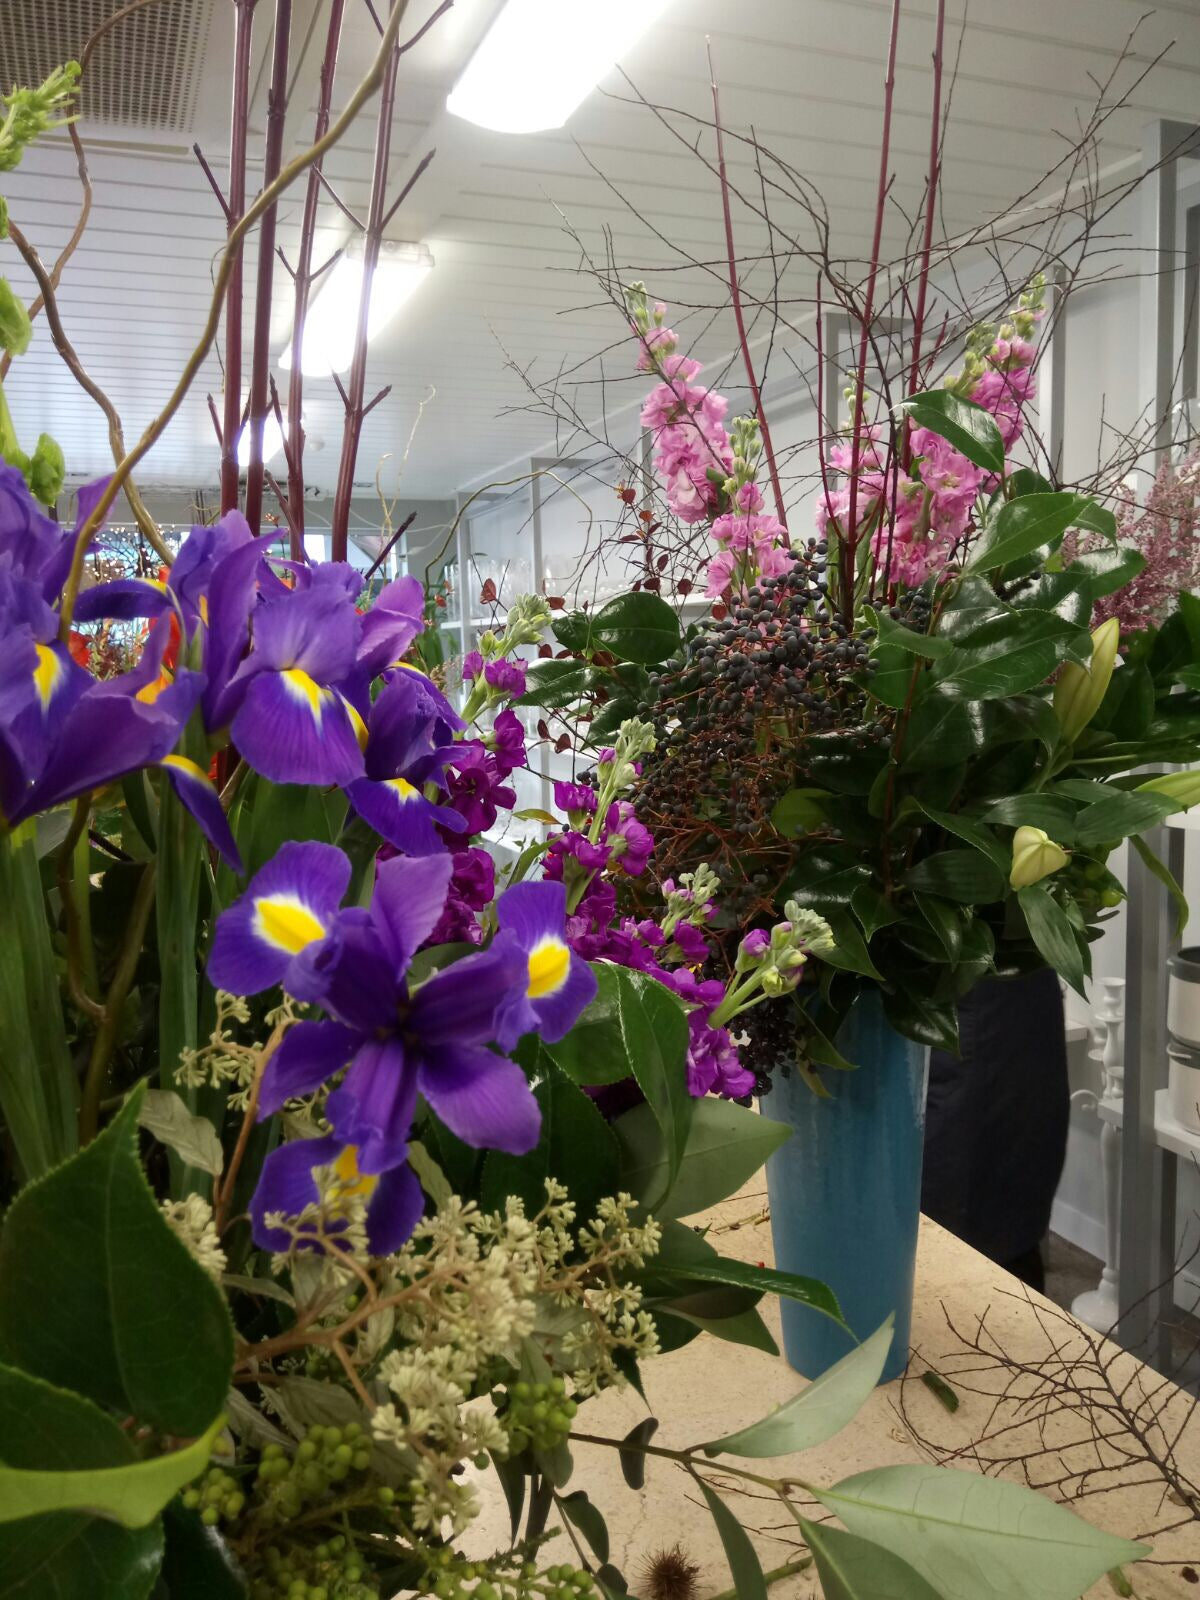 Vase Arrangements - All levels Saturday 17th March 10am- 12pm